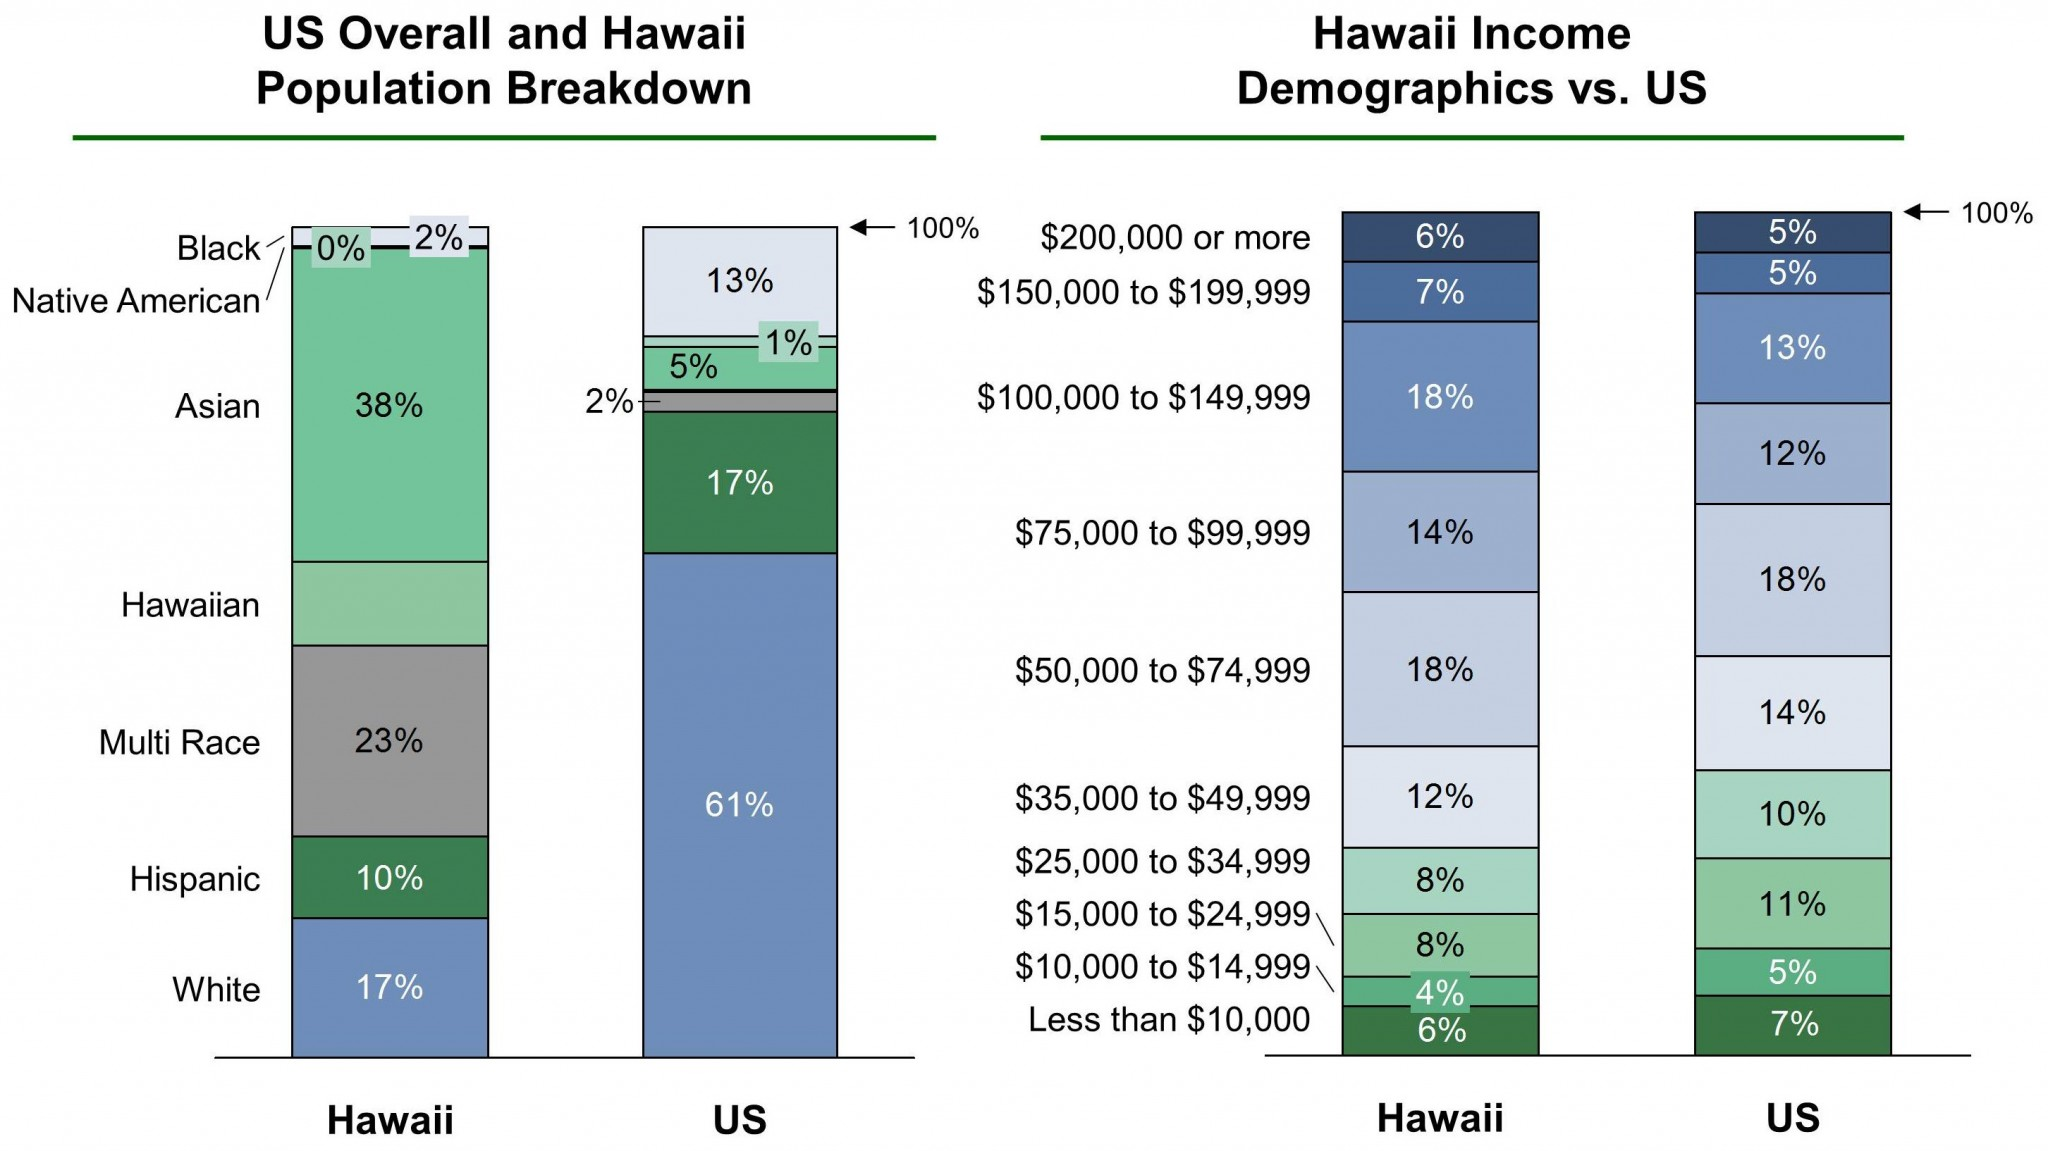 Hawaii EB-5 Regional Center Demographics VF